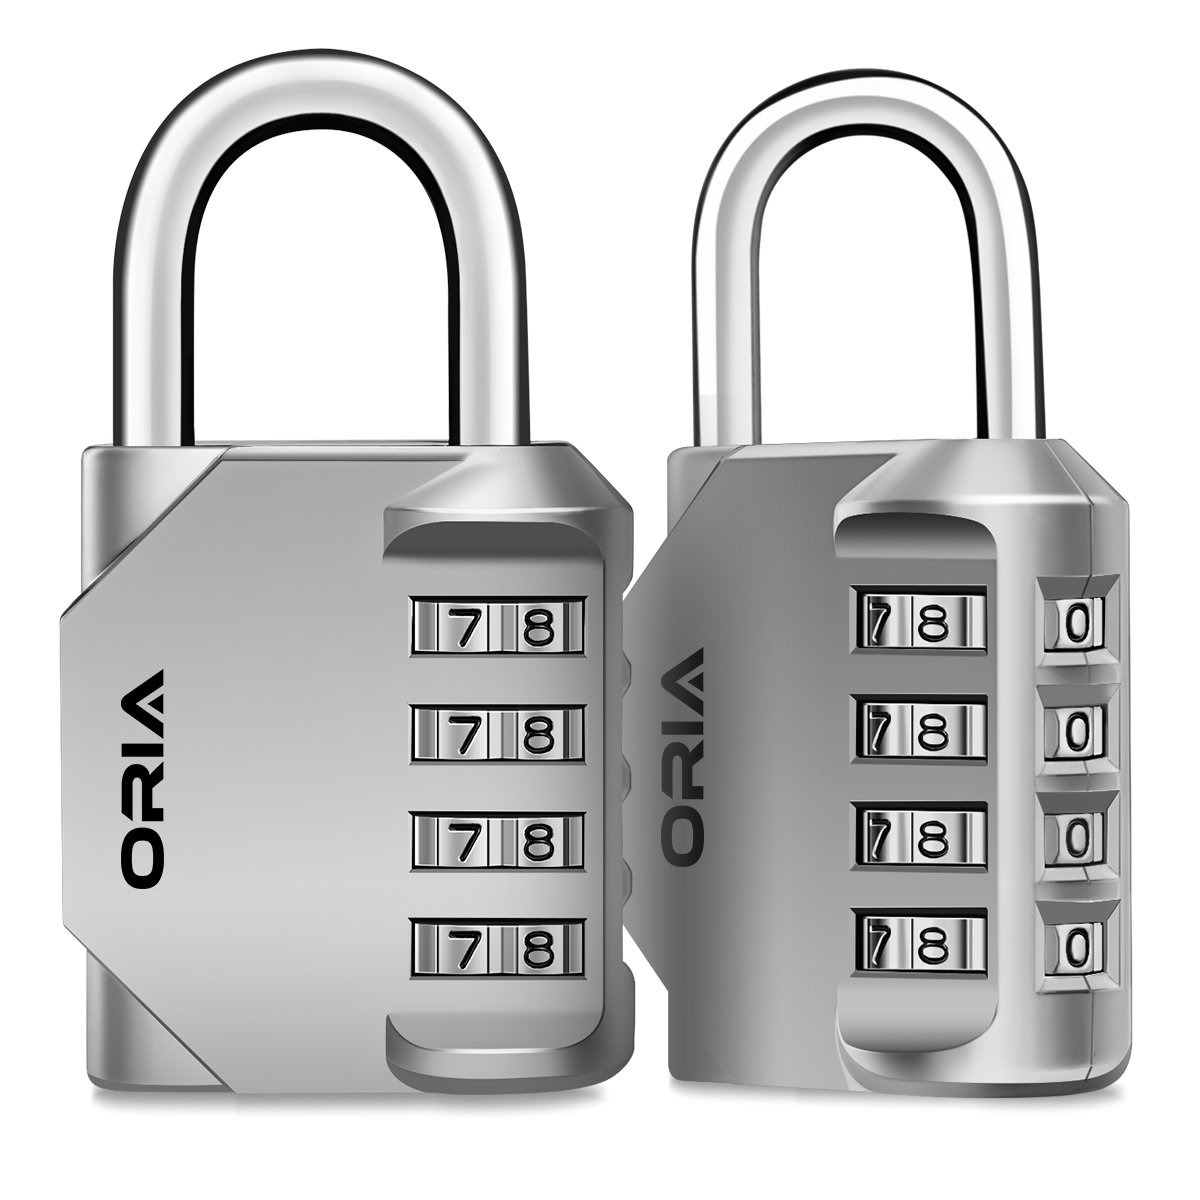 ORIA Combination Lock, 4 Digit Combination Padlock for School, Employee, Gym & Sports Locker, Case, Toolbox, Fence, Hasp Cabinet & Storage - Silver and 2 Pack by ORIA